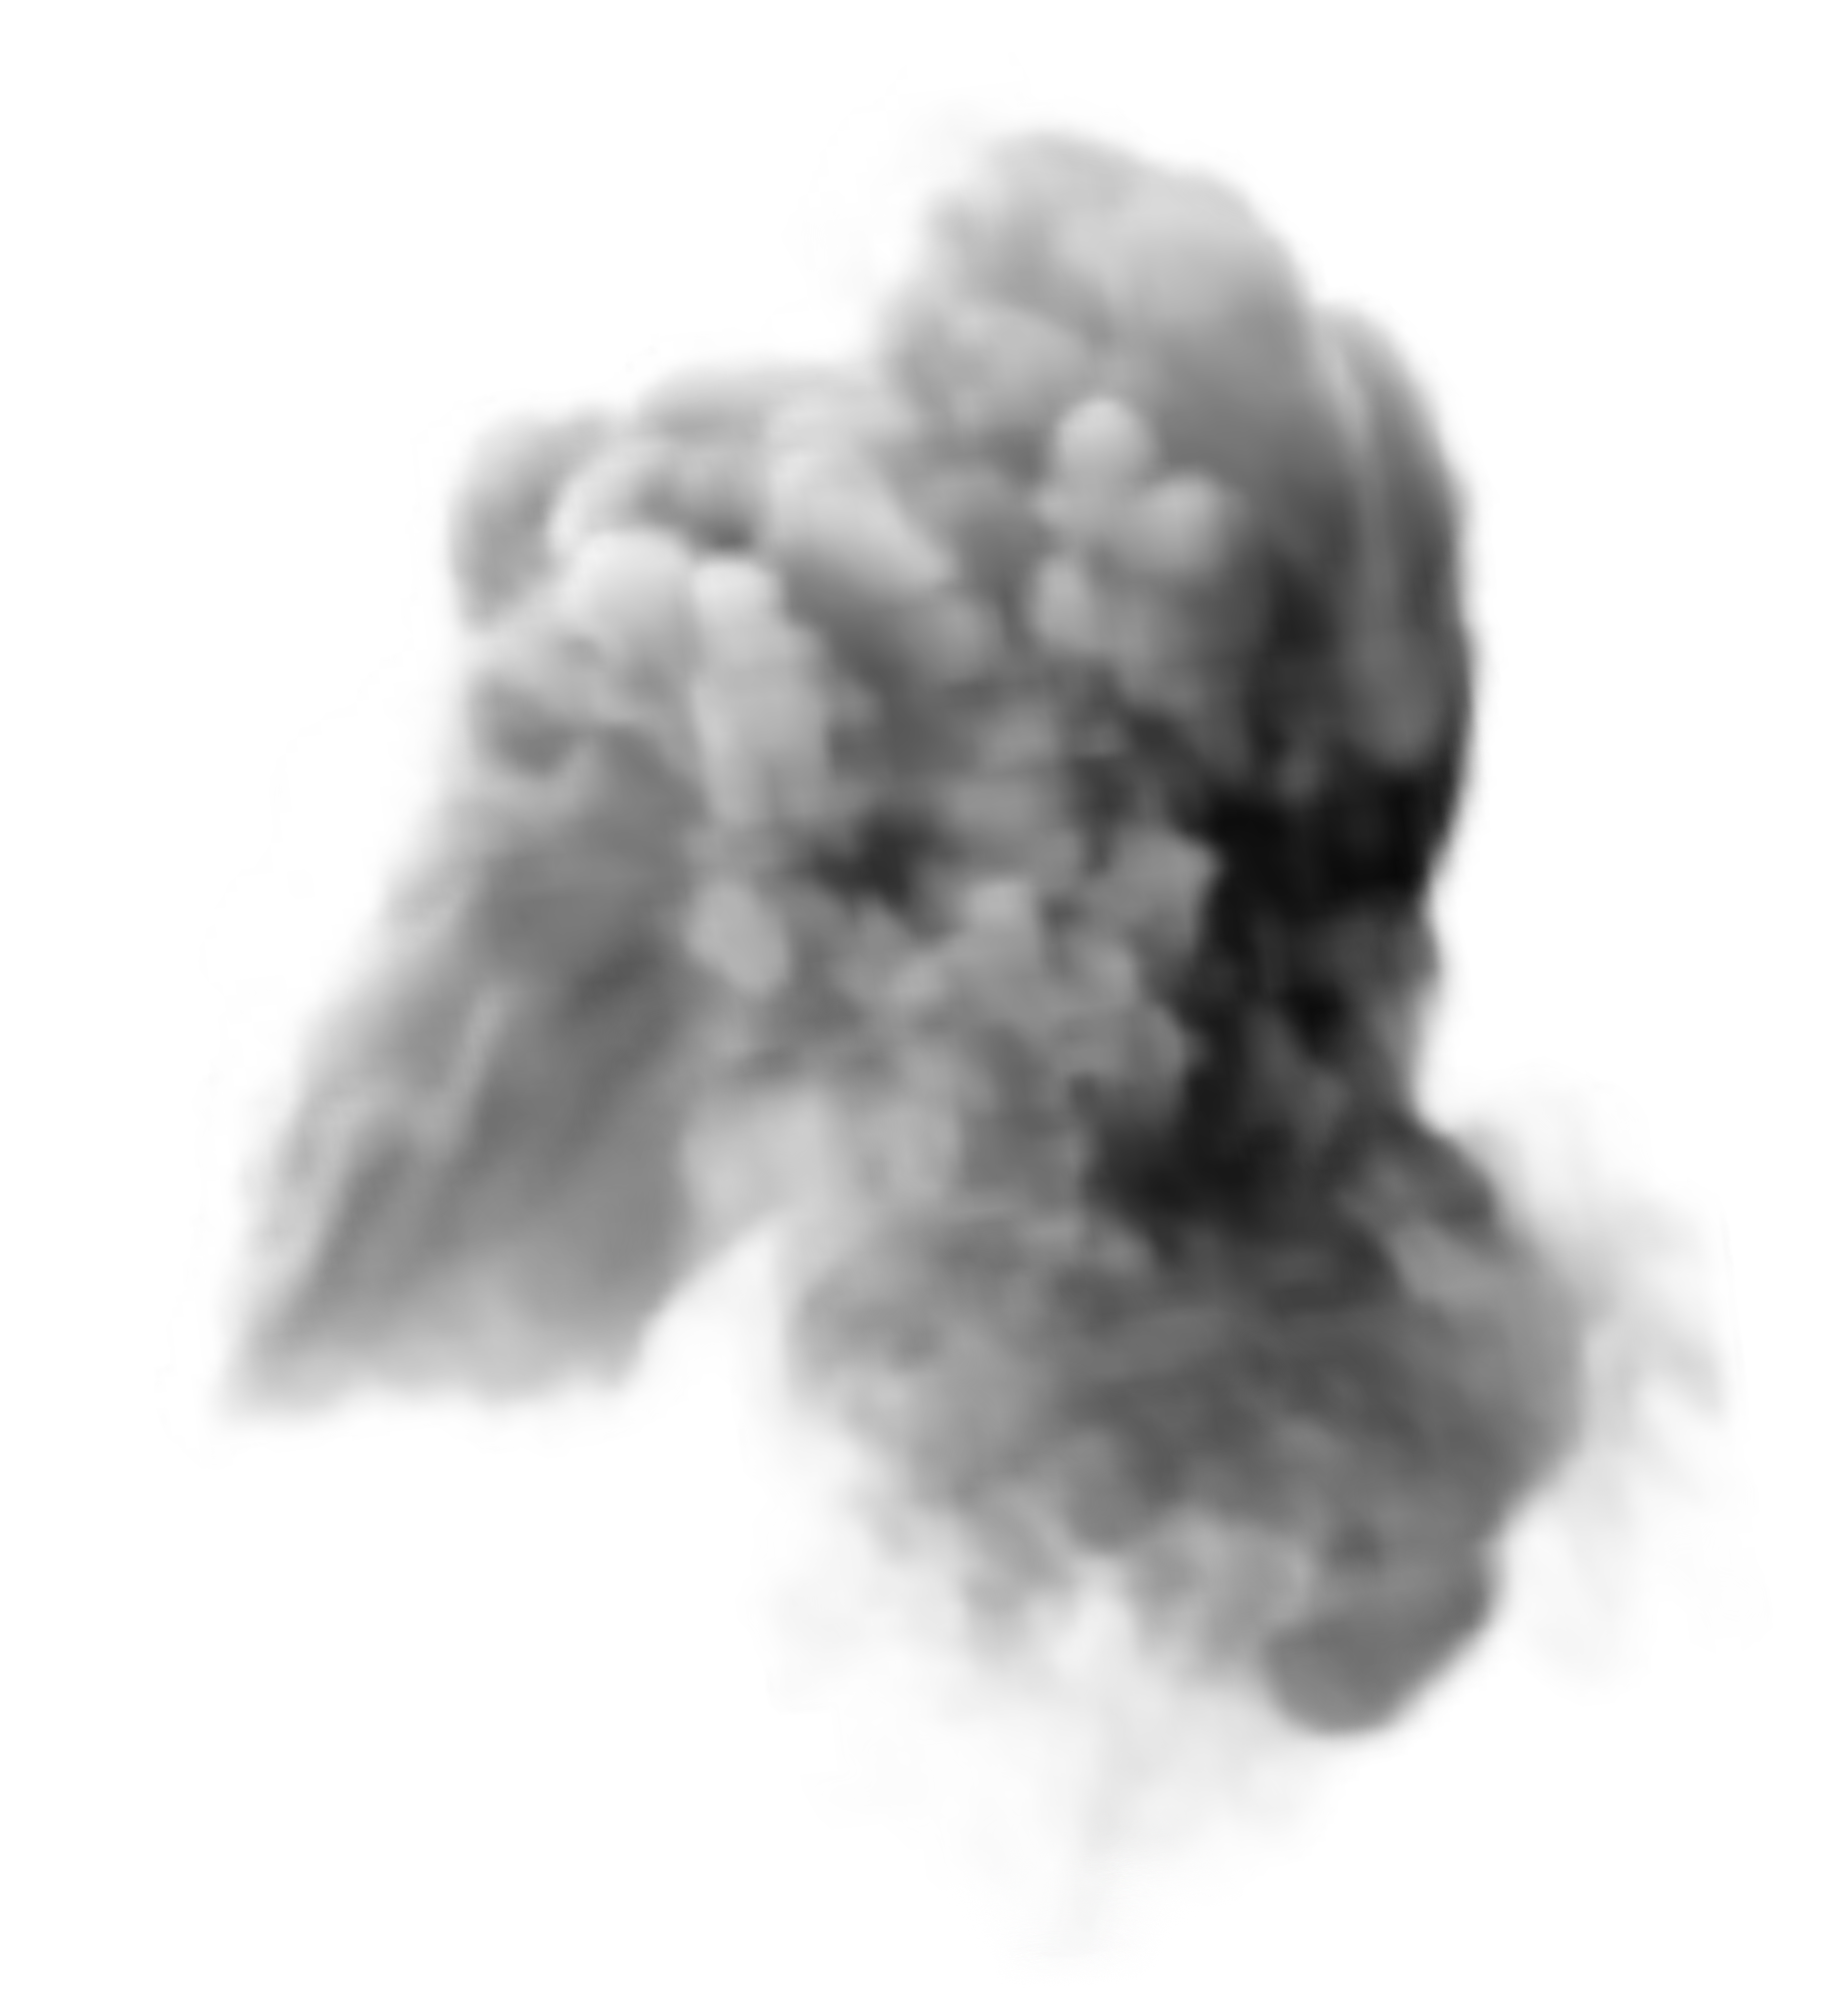 Smoke explosion png. Large image gallery yopriceville